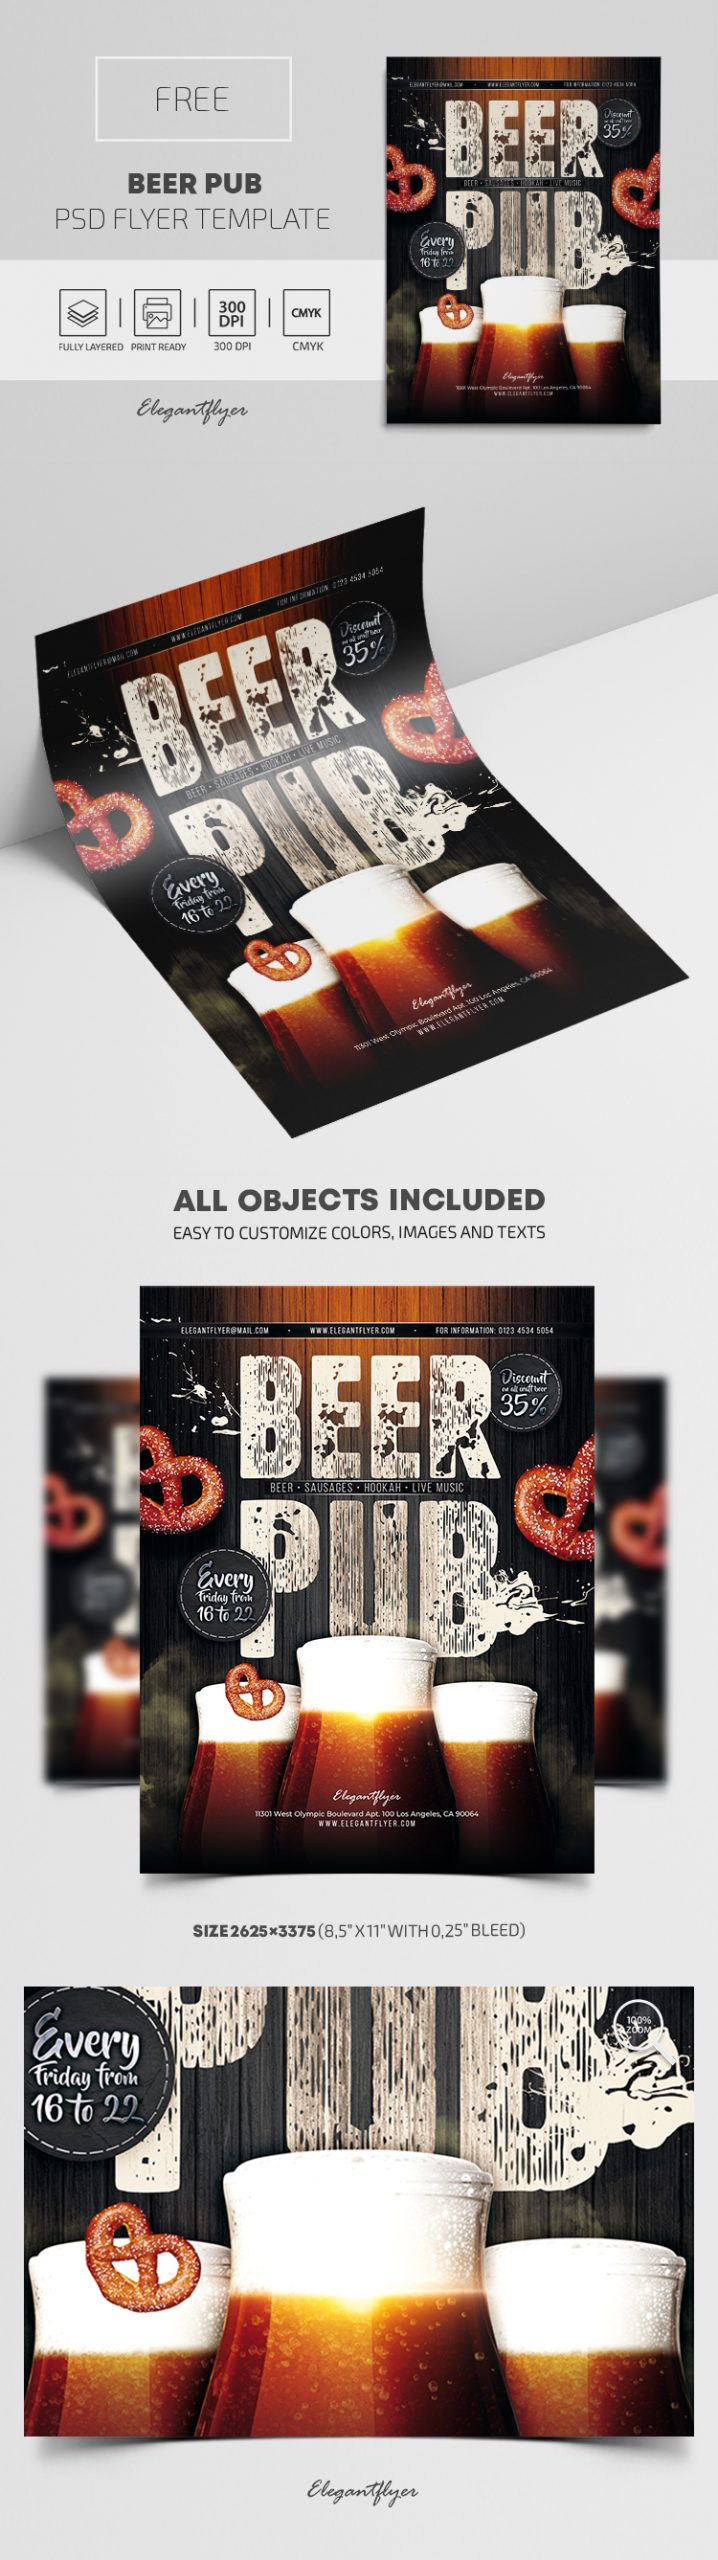 Beer Pub – Free PSD Flyer Template